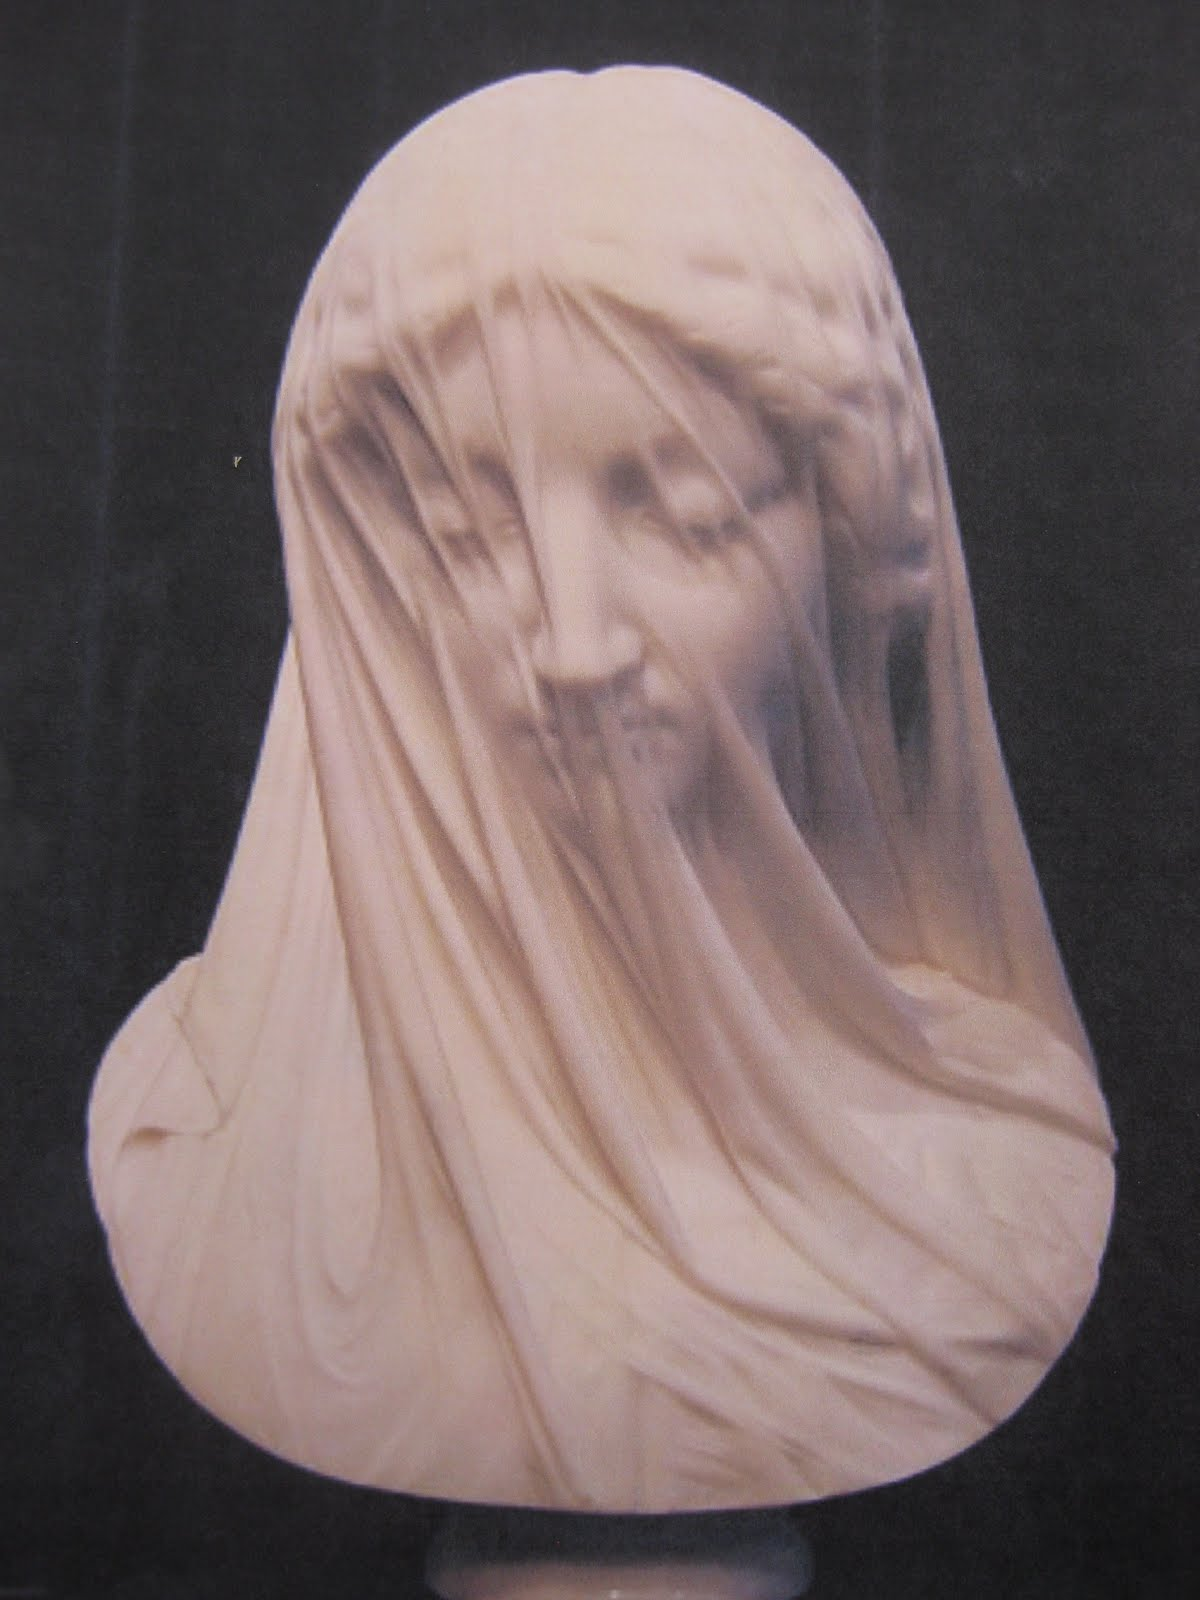 ERB's Woodcarving Blog: Day I Geislor Trip Veiled Lady in Wood